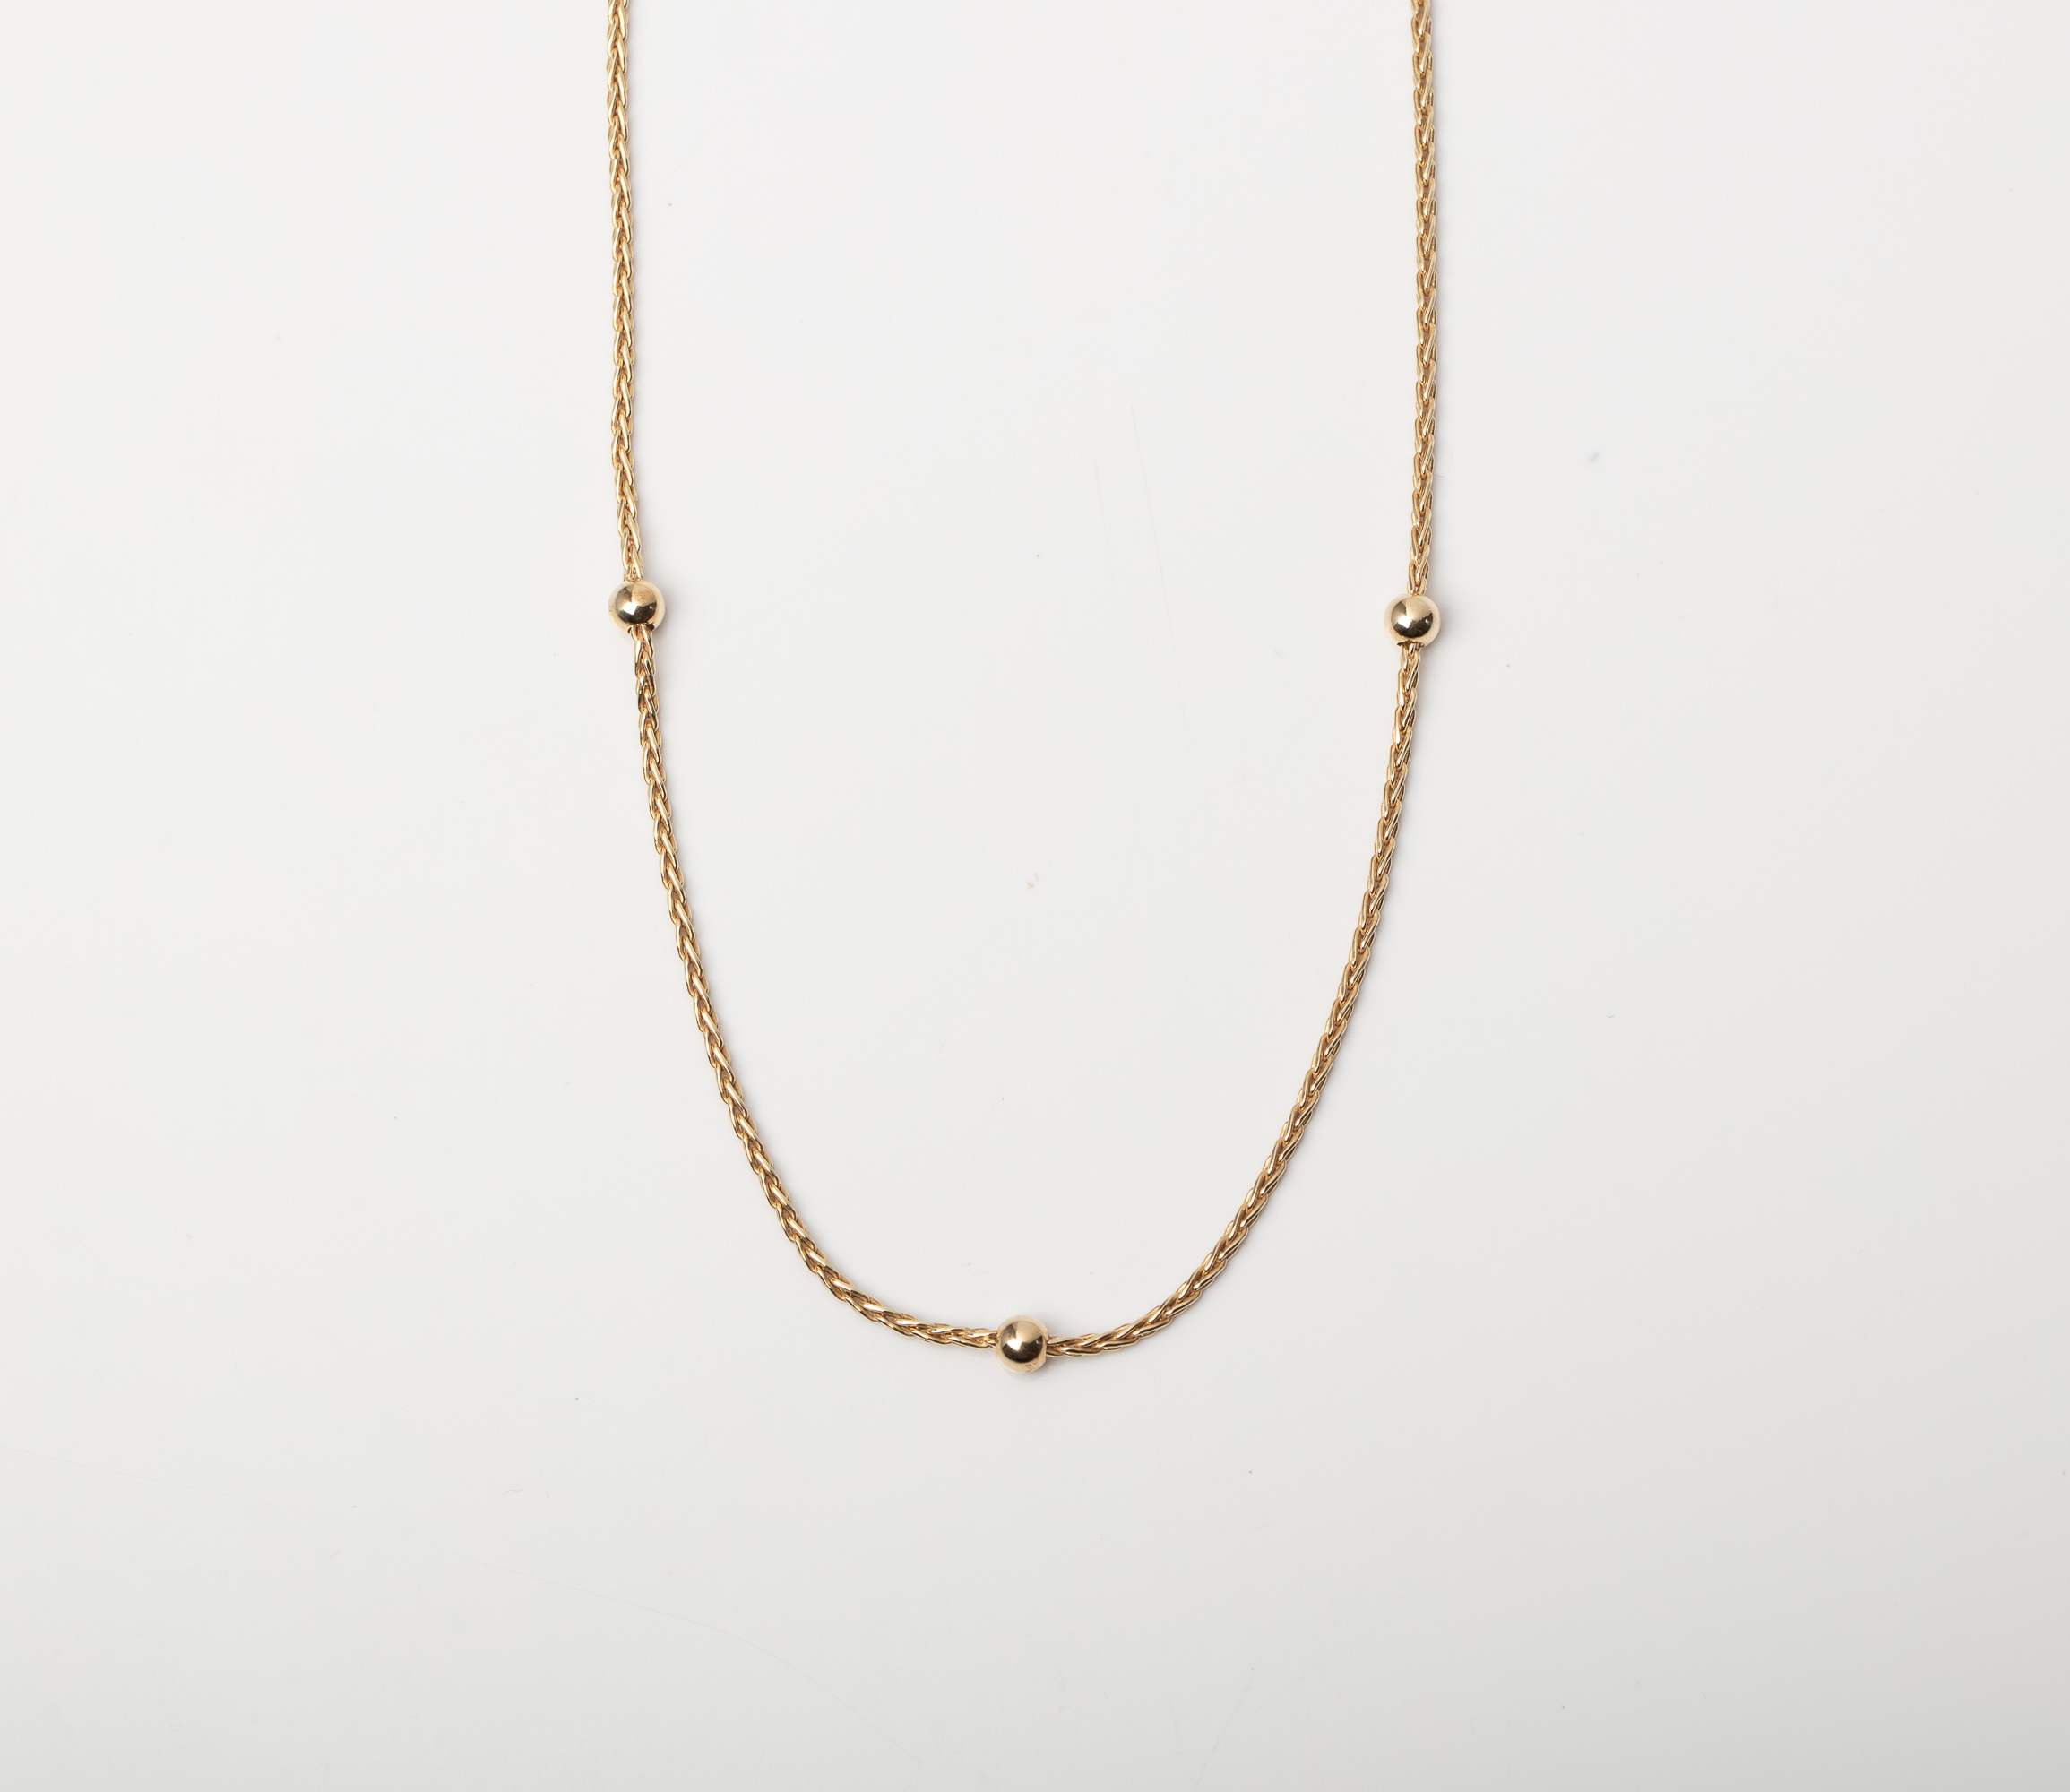 A 9CT GOLD & SILVER BONDED FANCY LINK CHAIN